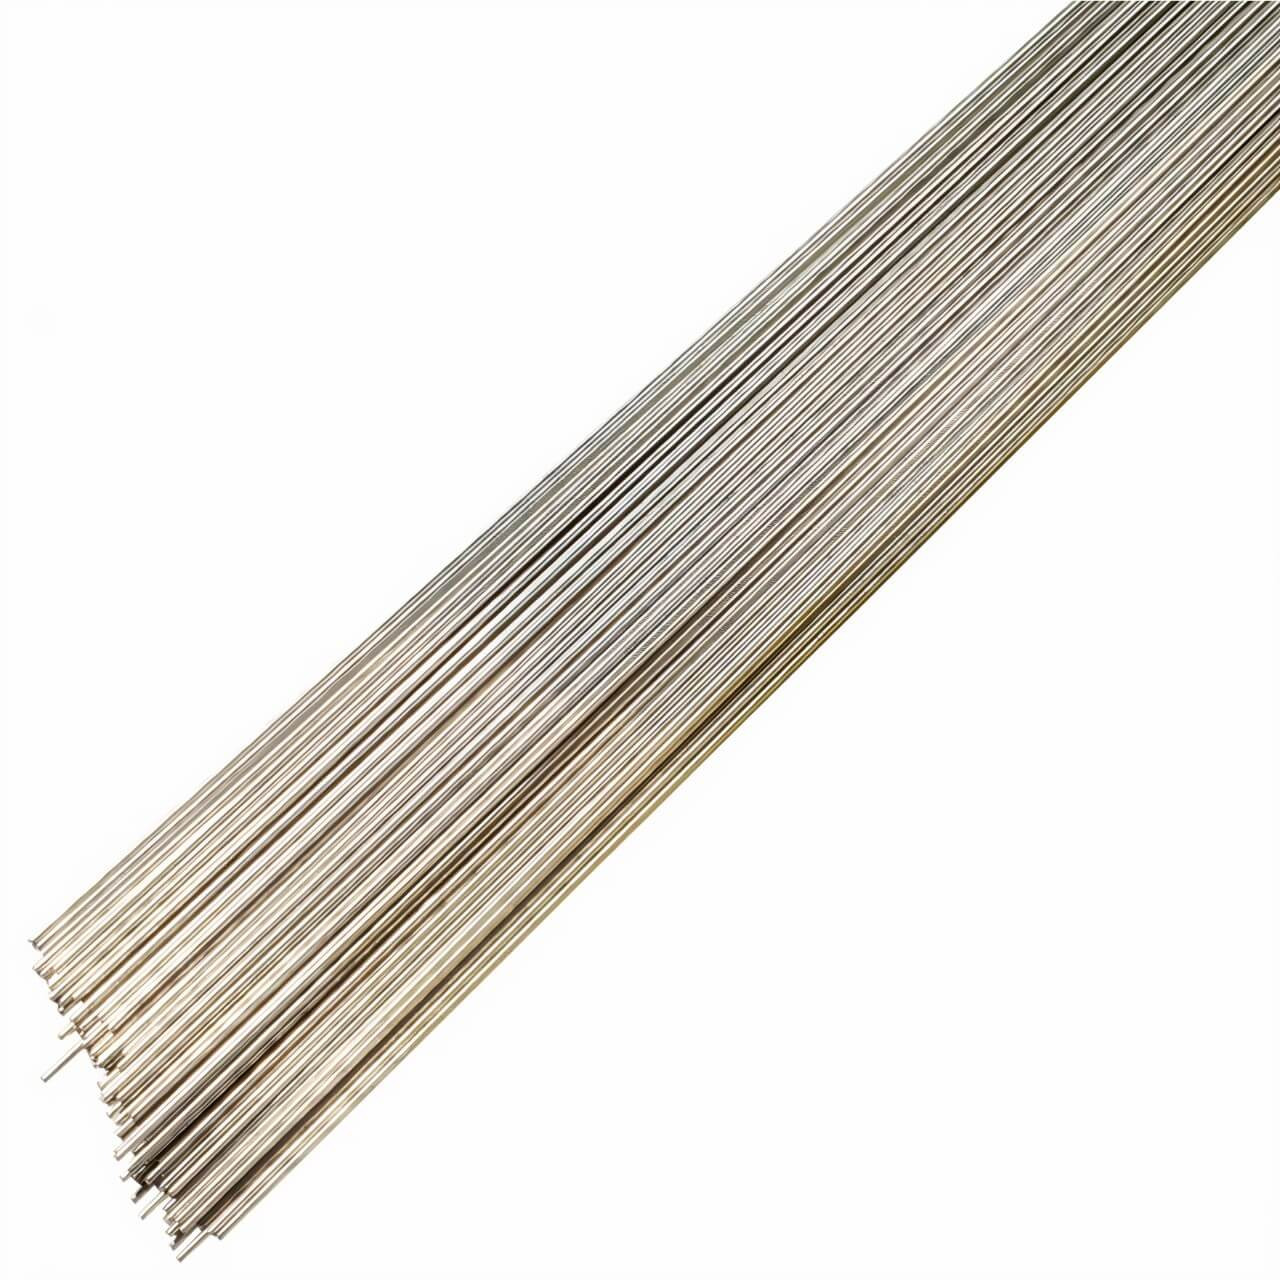 3.2mm 308L Stainless Steel Tig Wire /kg